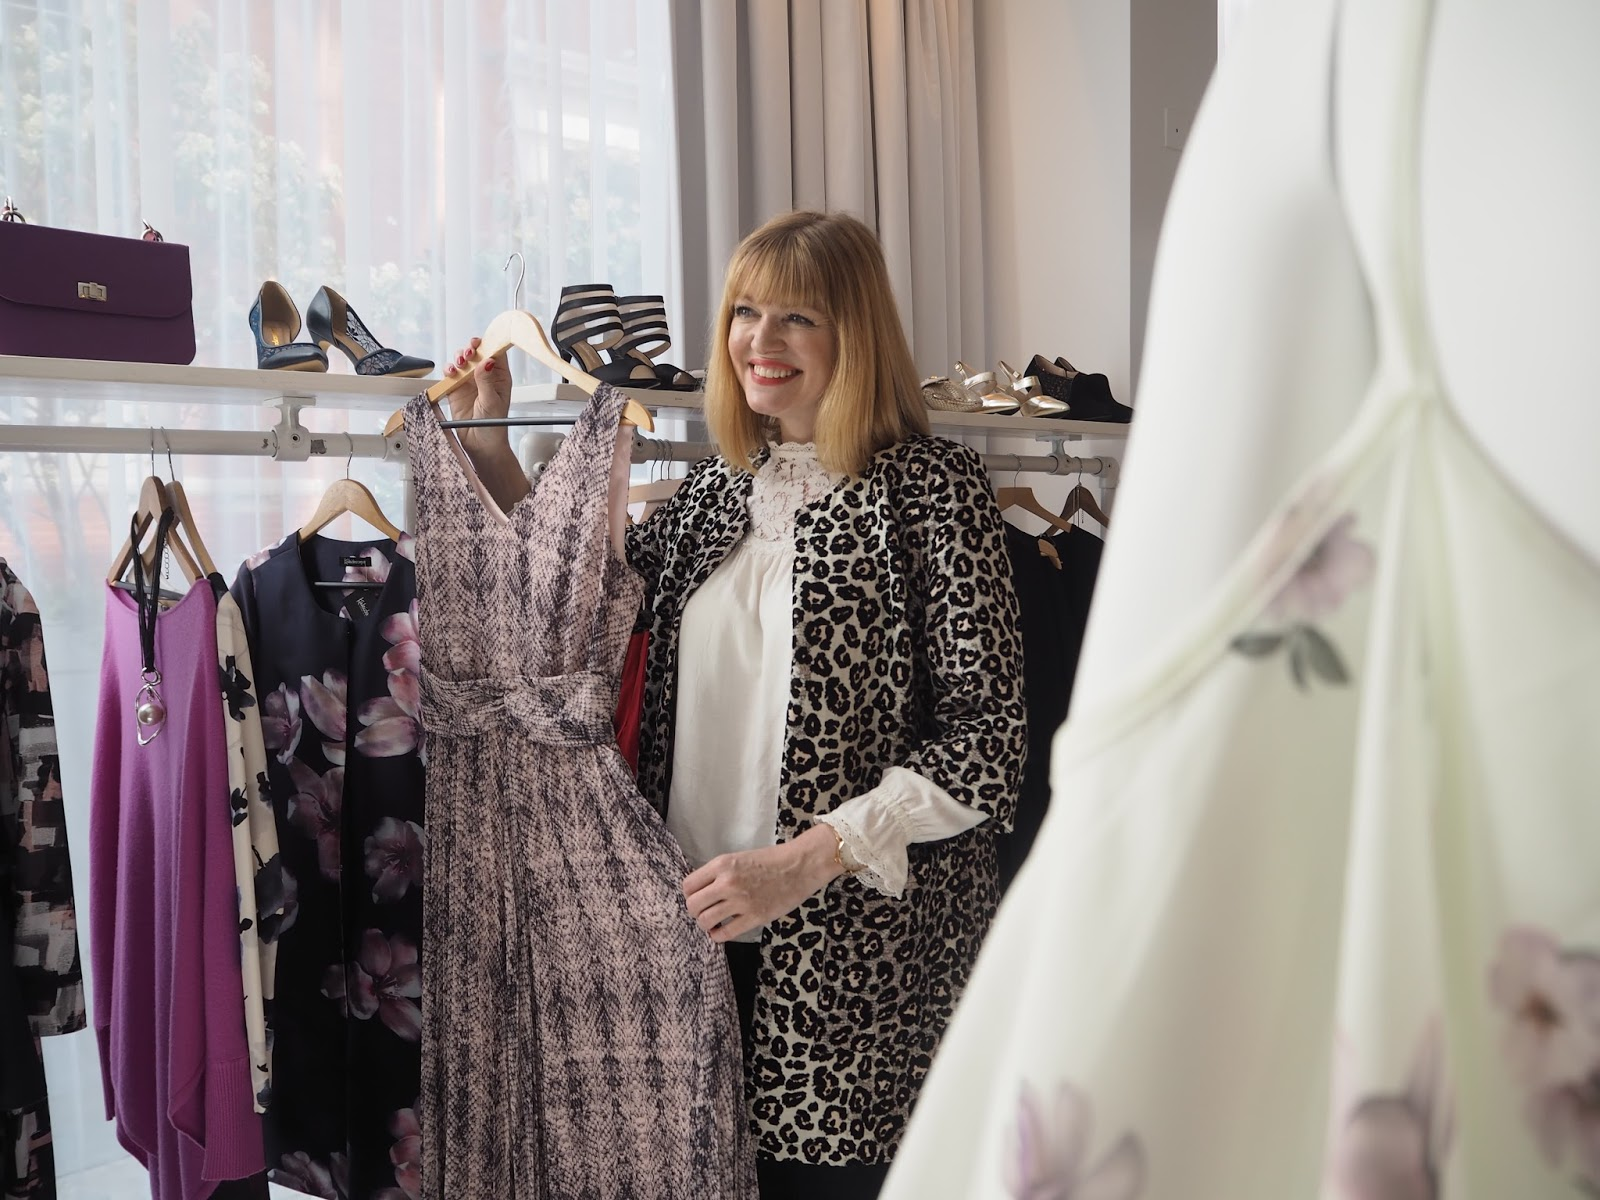 What-Lizzy-Loves-Kaleidoscope-AW17-Press-Day-Snakeprint-maxi-dress-Behind-The-Scenes